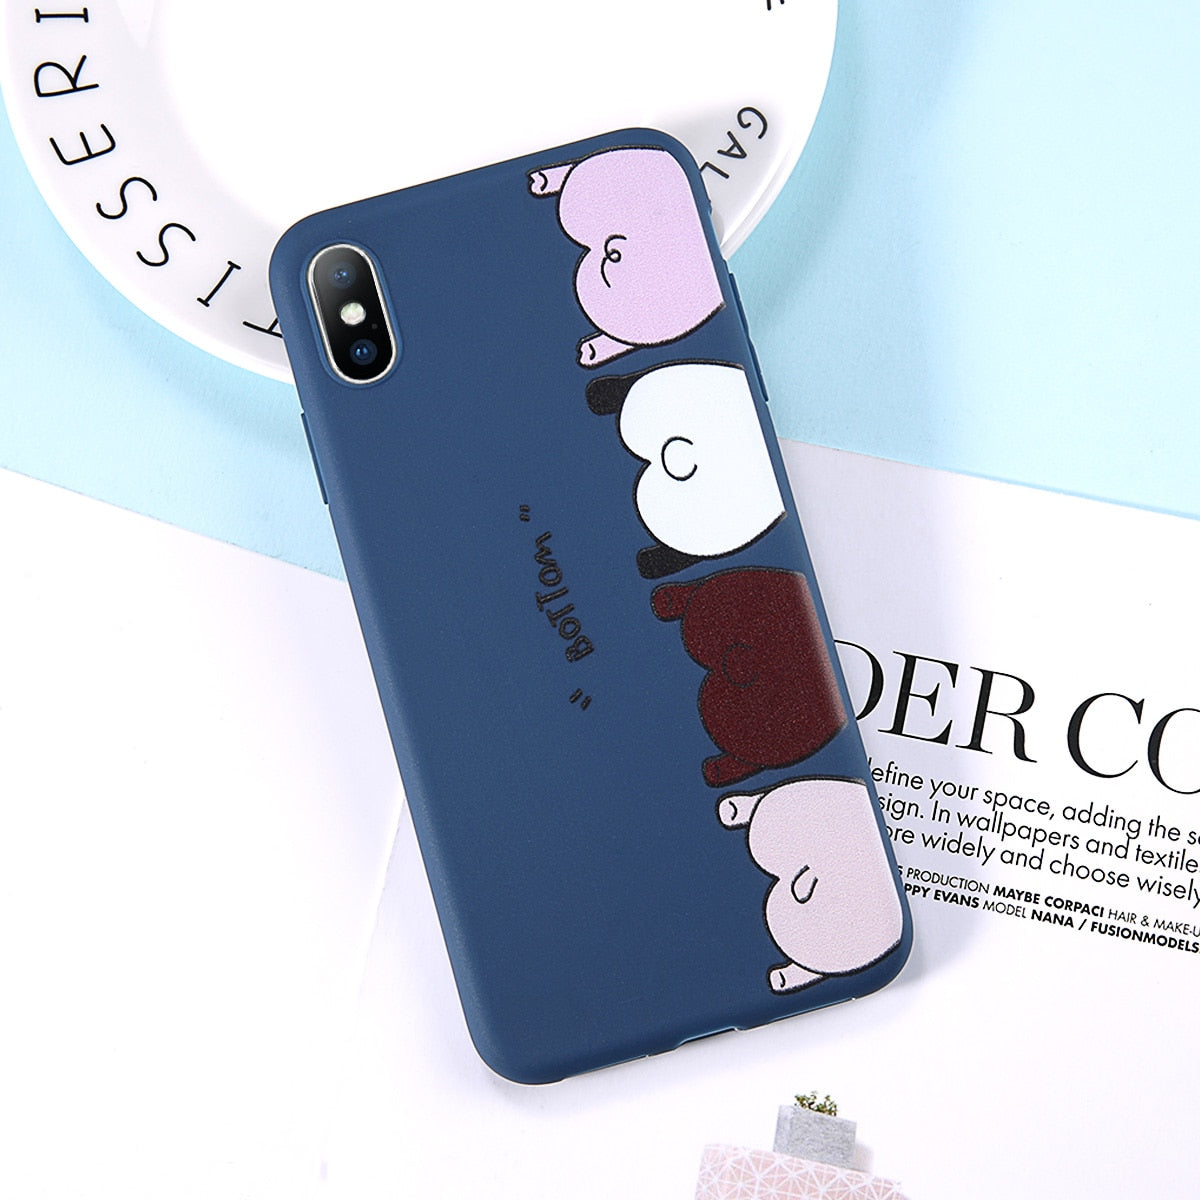 Uslion Funny Cute Cartoon Bottom Phone Case For Iphone 6 7 8 Plus X Xr Xs Max Cases For Iphone 6 6s Plus Soft Tpu Silicon Cover